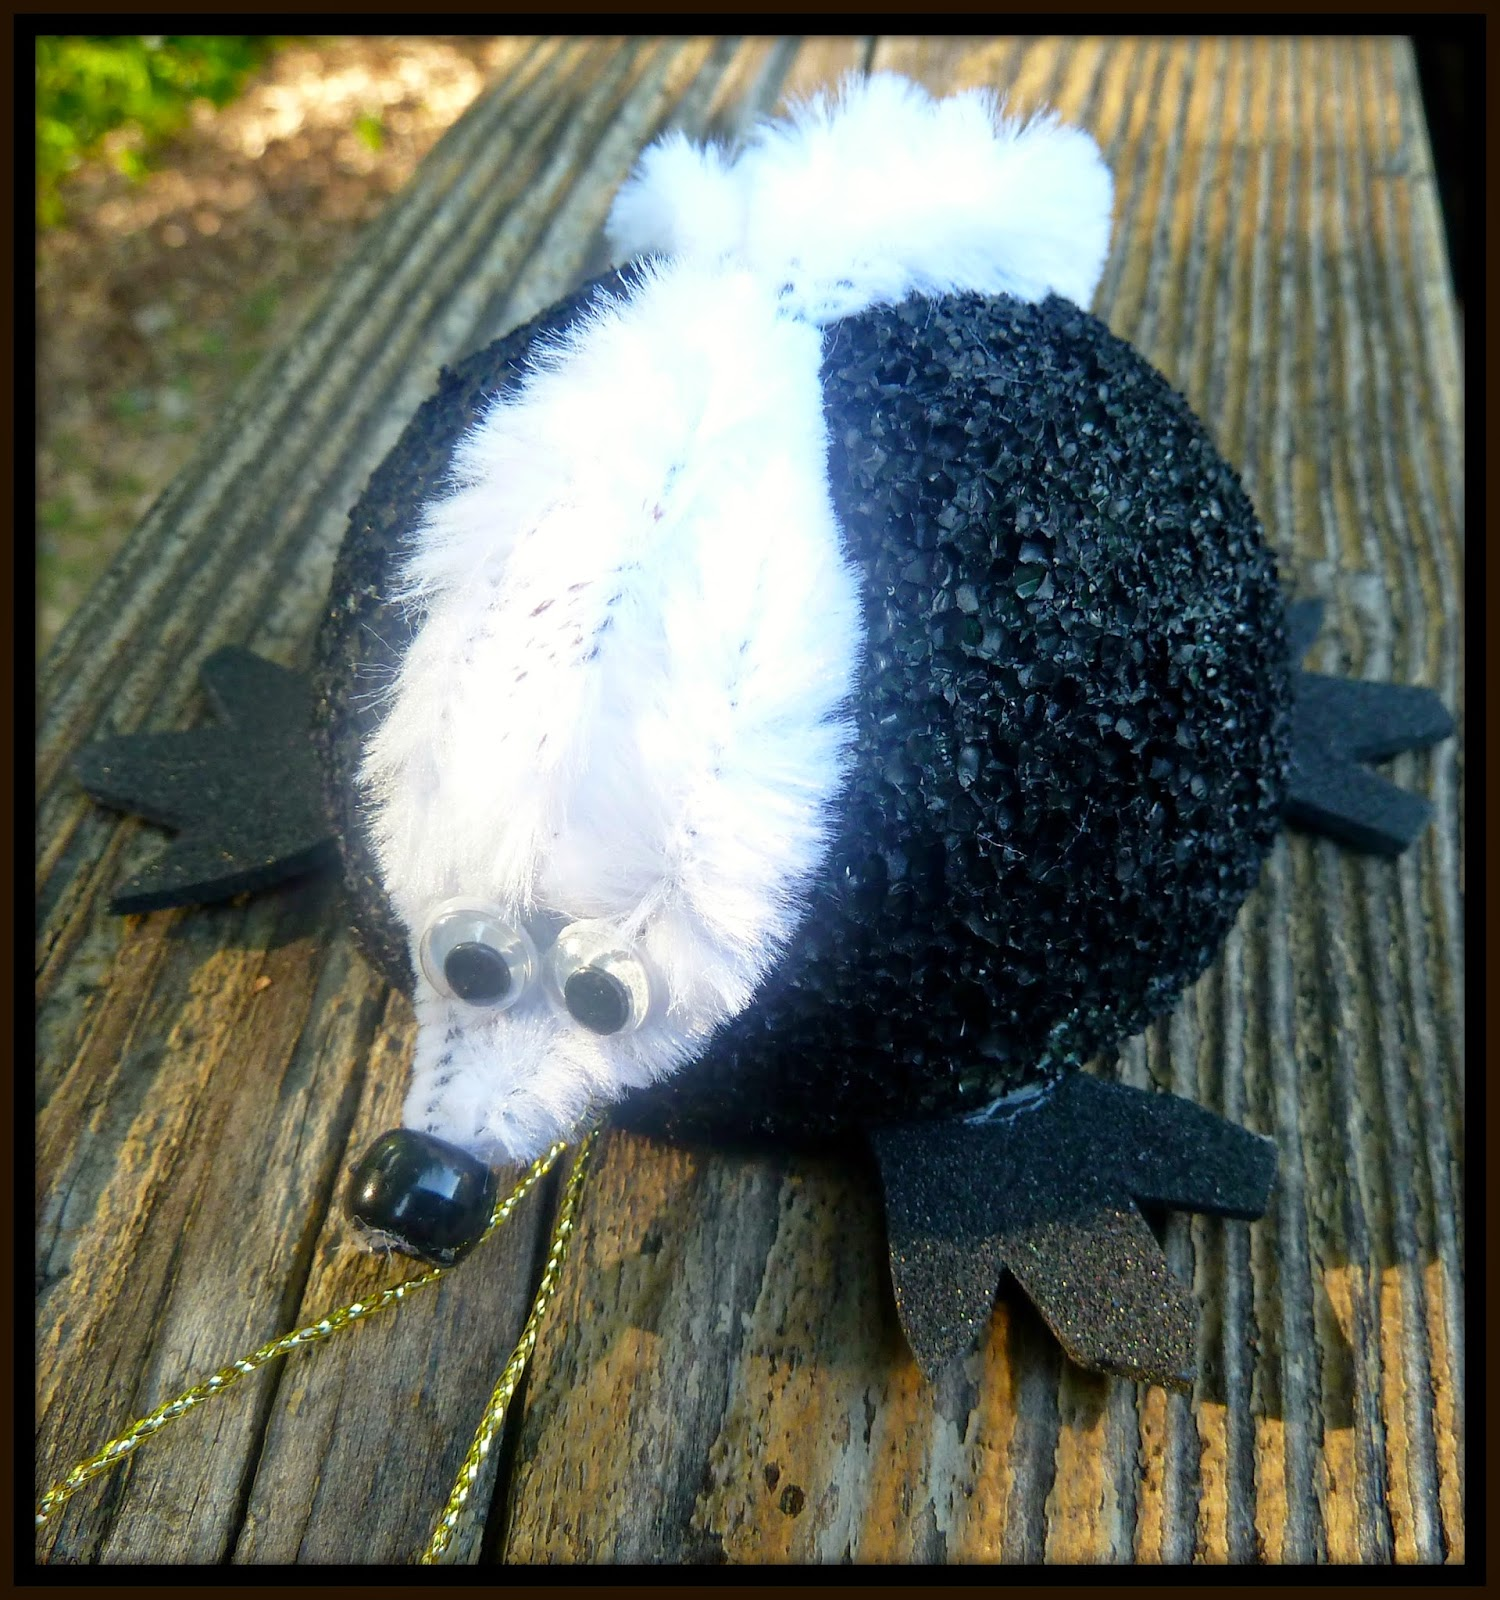 http://www.makeiteasycrafts.com/2014/08/honey-badger-ornament.html